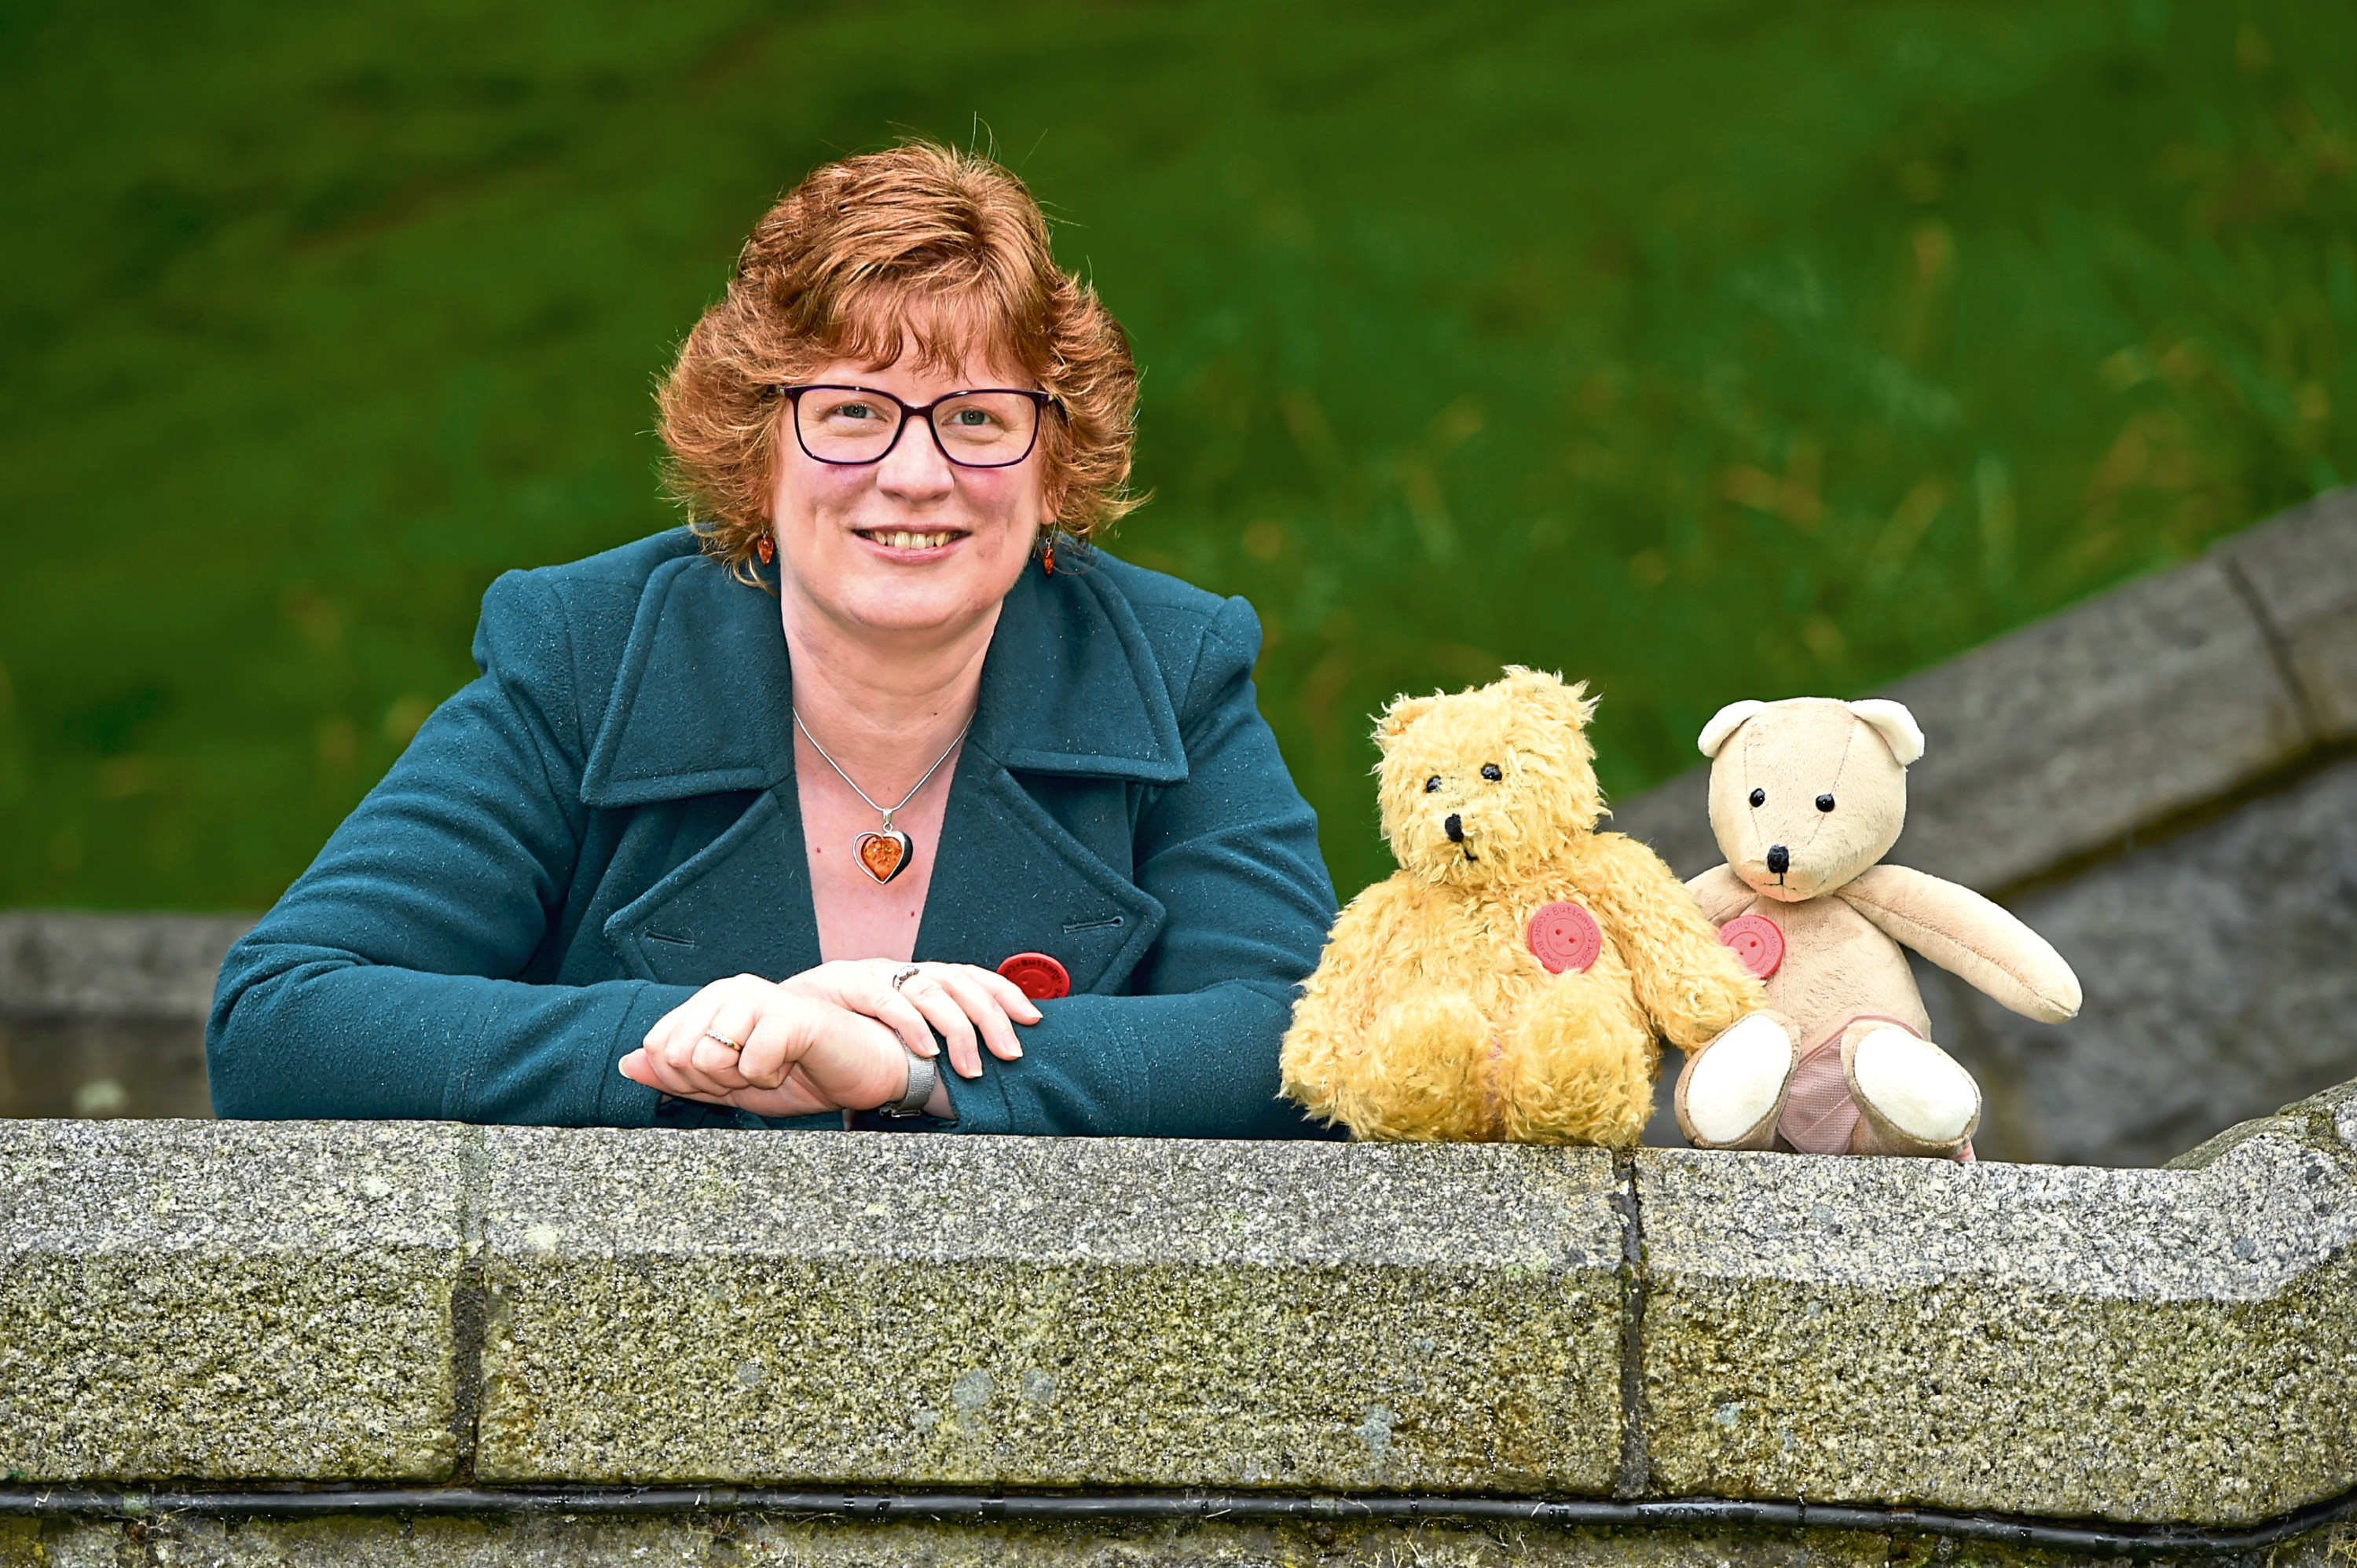 Jennifer Gow, whose charity gives teddies to sick kids, is being honoured as part of the Queen's Birthday Honours 2019.